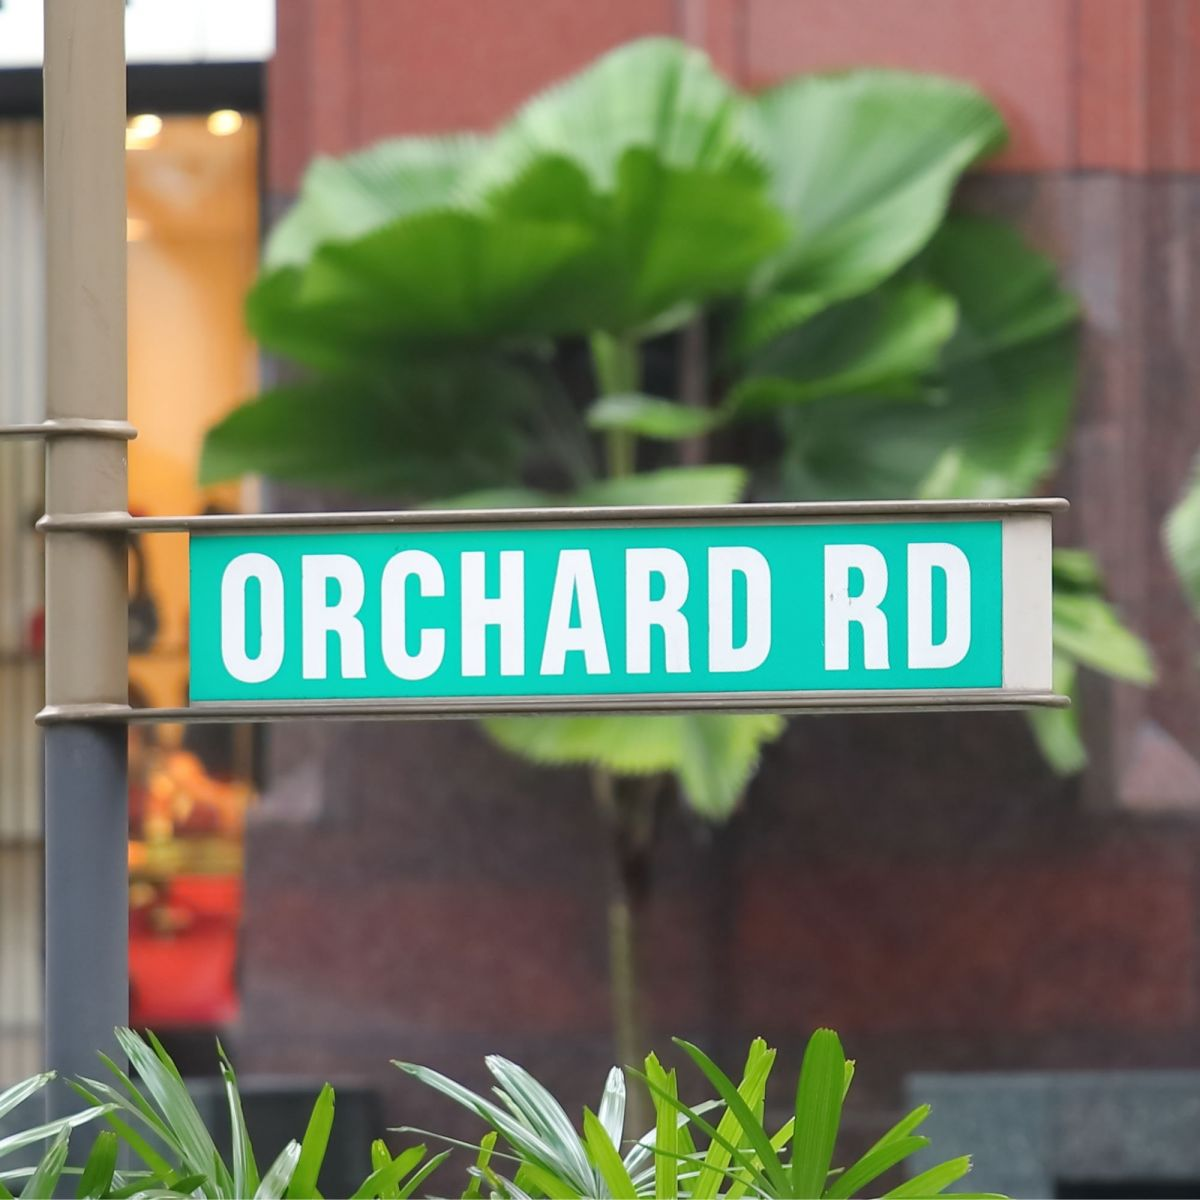 Why are Singaporeans shopping less in Orchard Road?